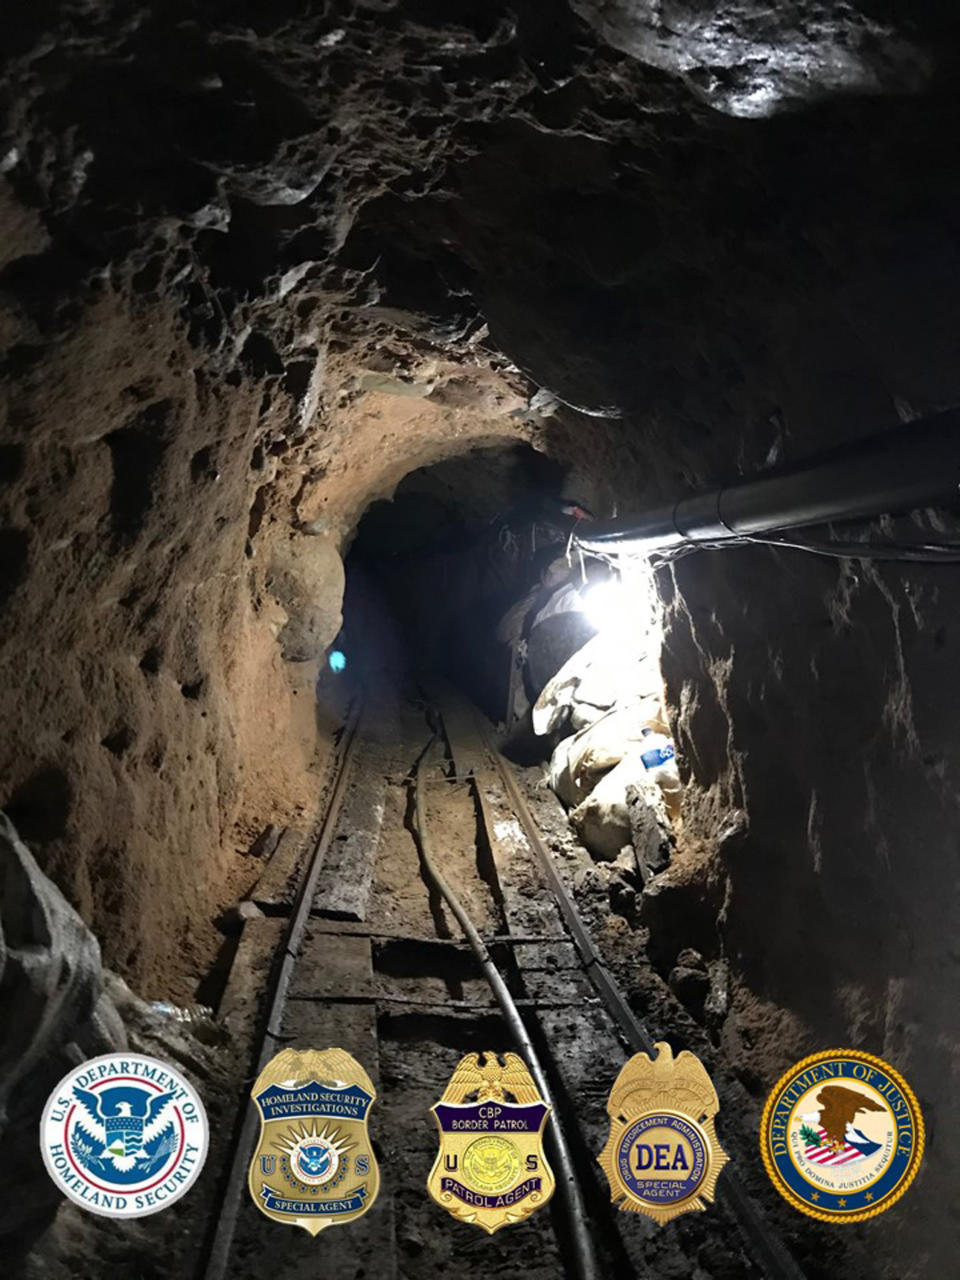 This photo released Tuesday, March 31 2020, by the San Diego Tunnel Task Force, Department of Homeland Security, shows a rail system in a cross-border tunnel running from warehouses in Tijuana, Mexico to San Diego. U.S. authorities seized a large haul of drugs including opioids, methamphetamine and cocaine, being smuggled through the tunnel equipped with ventilation, lighting and an underground rail system. Authorities believe it existed for several months. (San Diego Tunnel Task Force/Department of Homeland Security via AP)